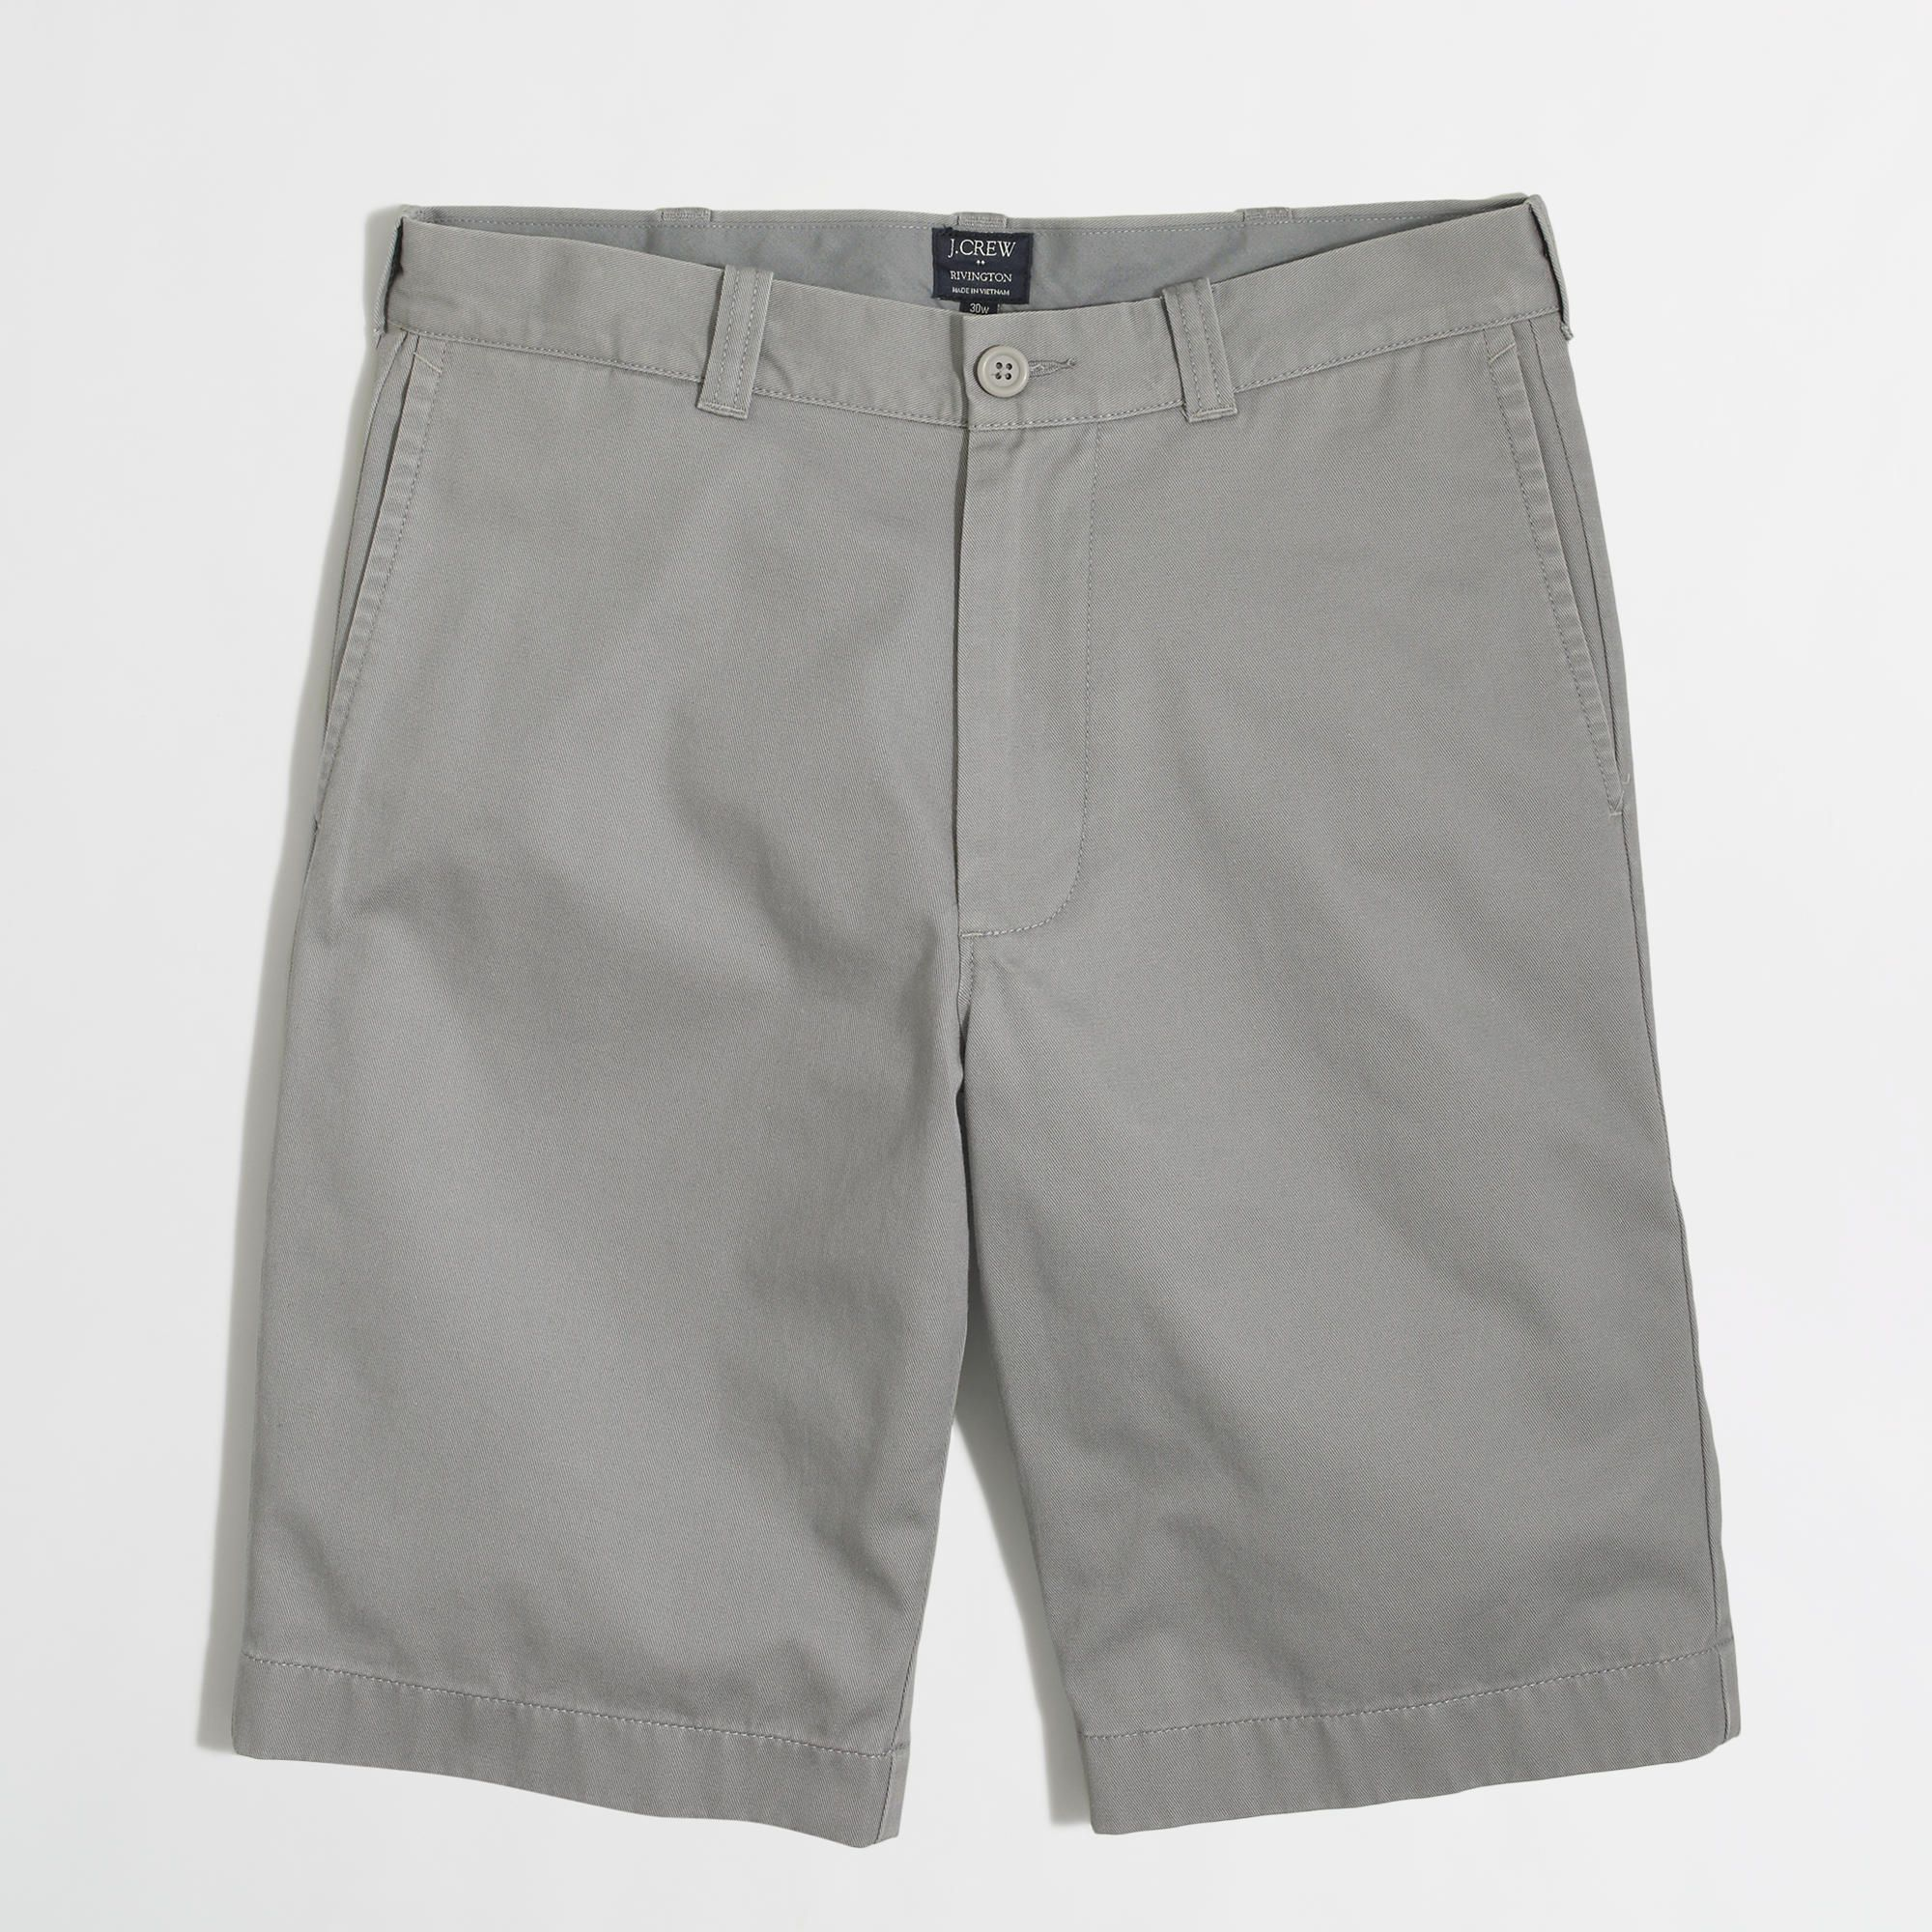 Light Slate Gray Khaki Shorts 2016 | Men's fashion | Shorts ...